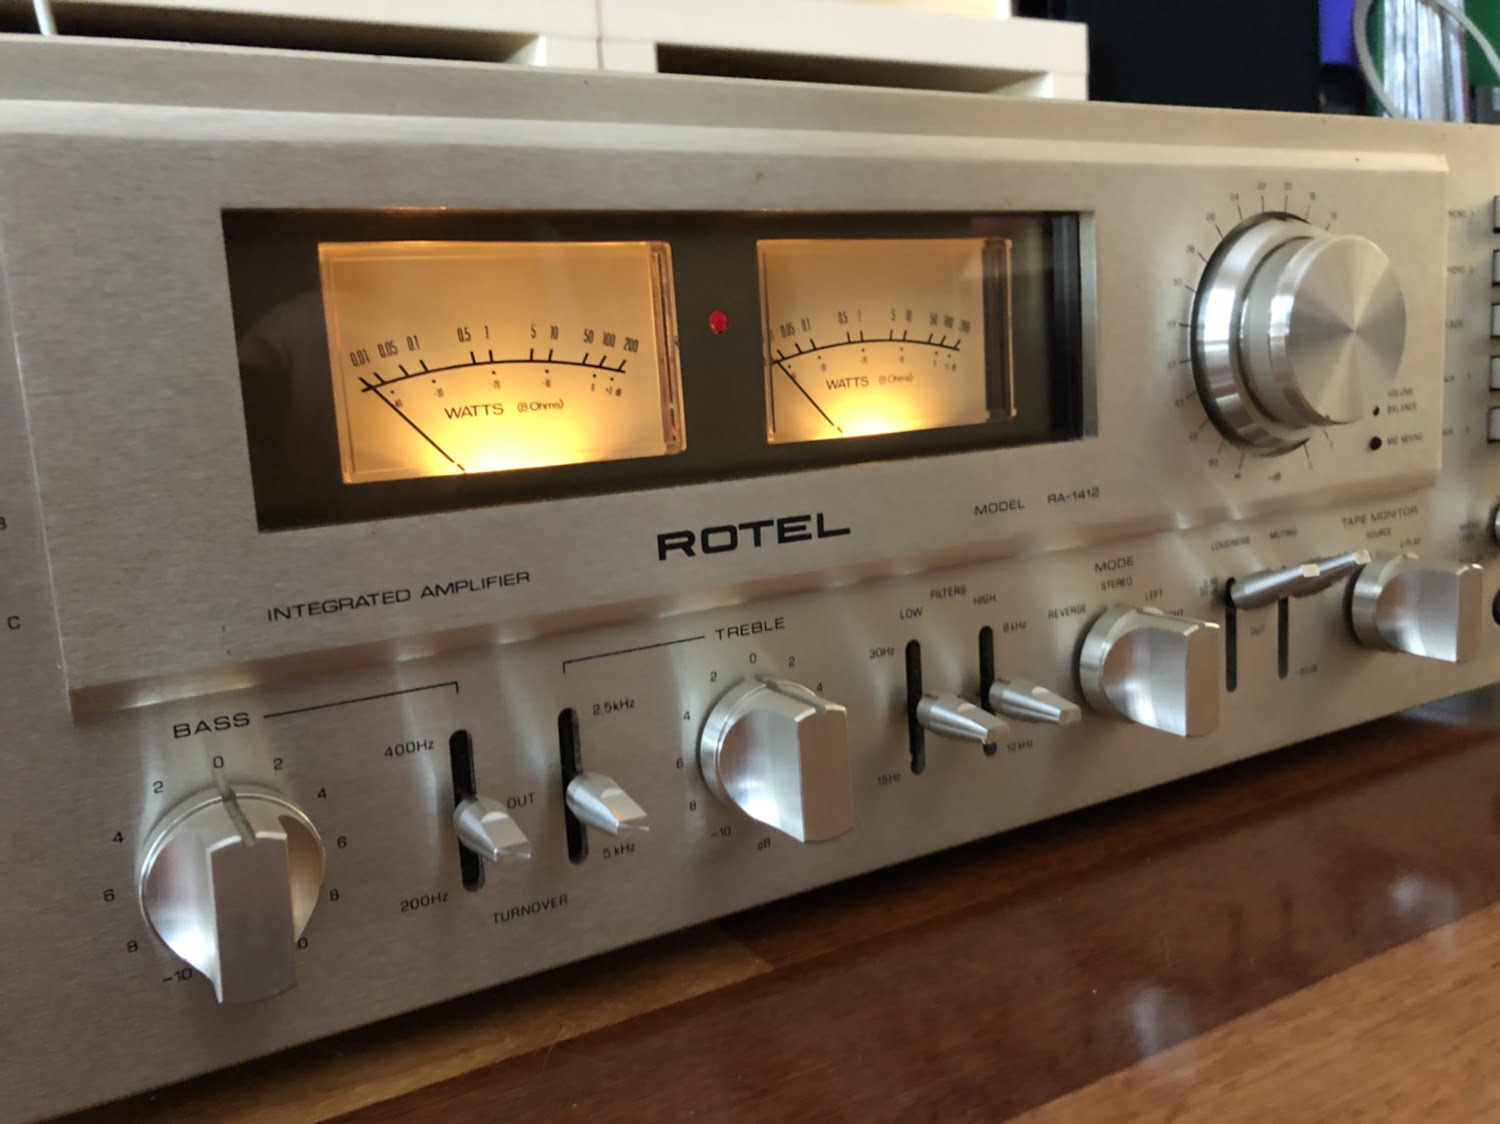 Stunning Rotel RA-1412 Amplifier Cleaned, Serviced & for Sale!